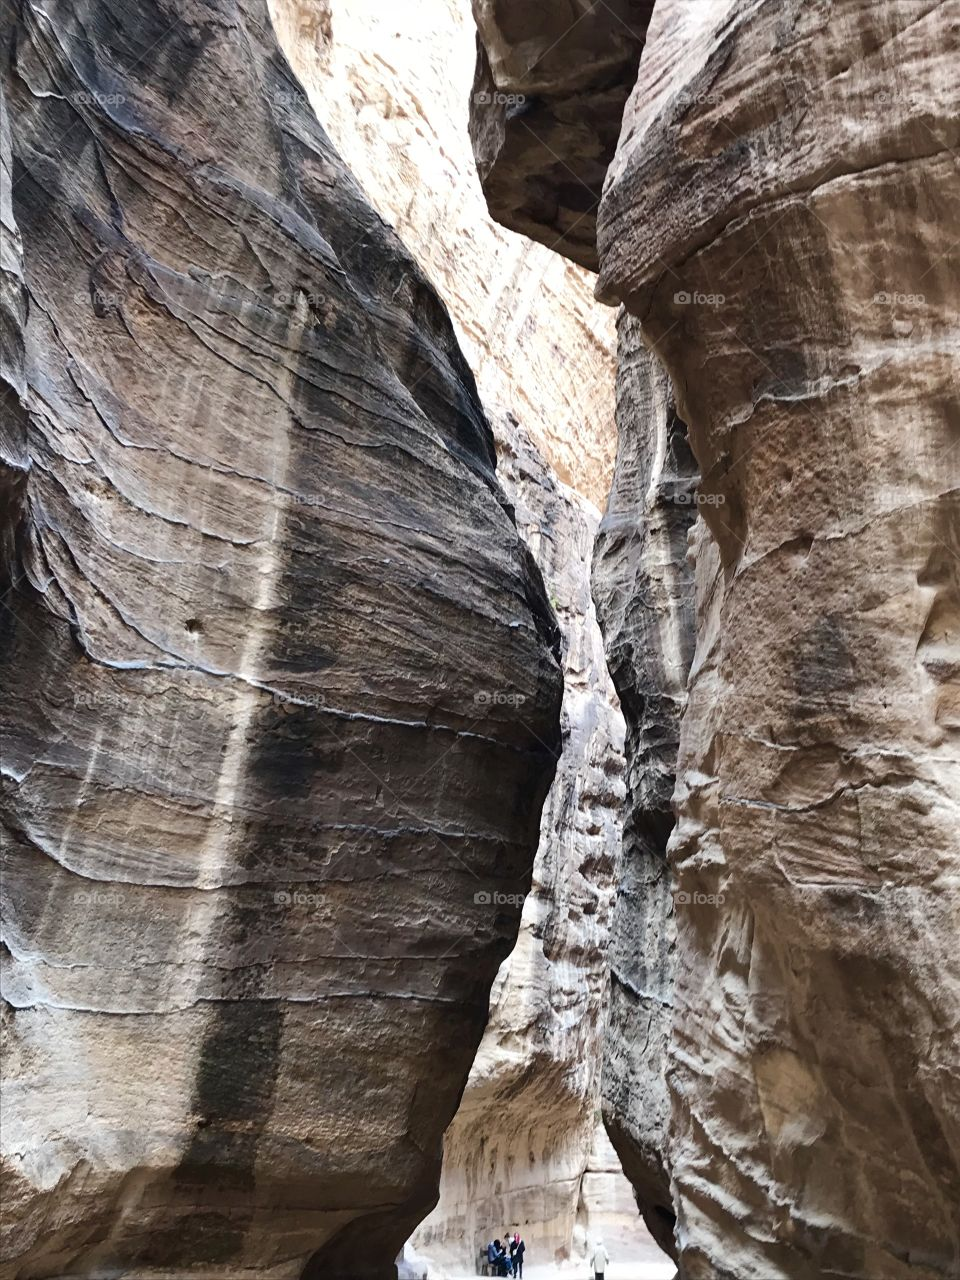 Narrow mountain pathway down to the great Treasury in Petra, Jordan, which was featured in the Indiana Jones movie The Last Crusade. Petra was the city of the ancient mysterious and brilliant Nabatean kingdom.